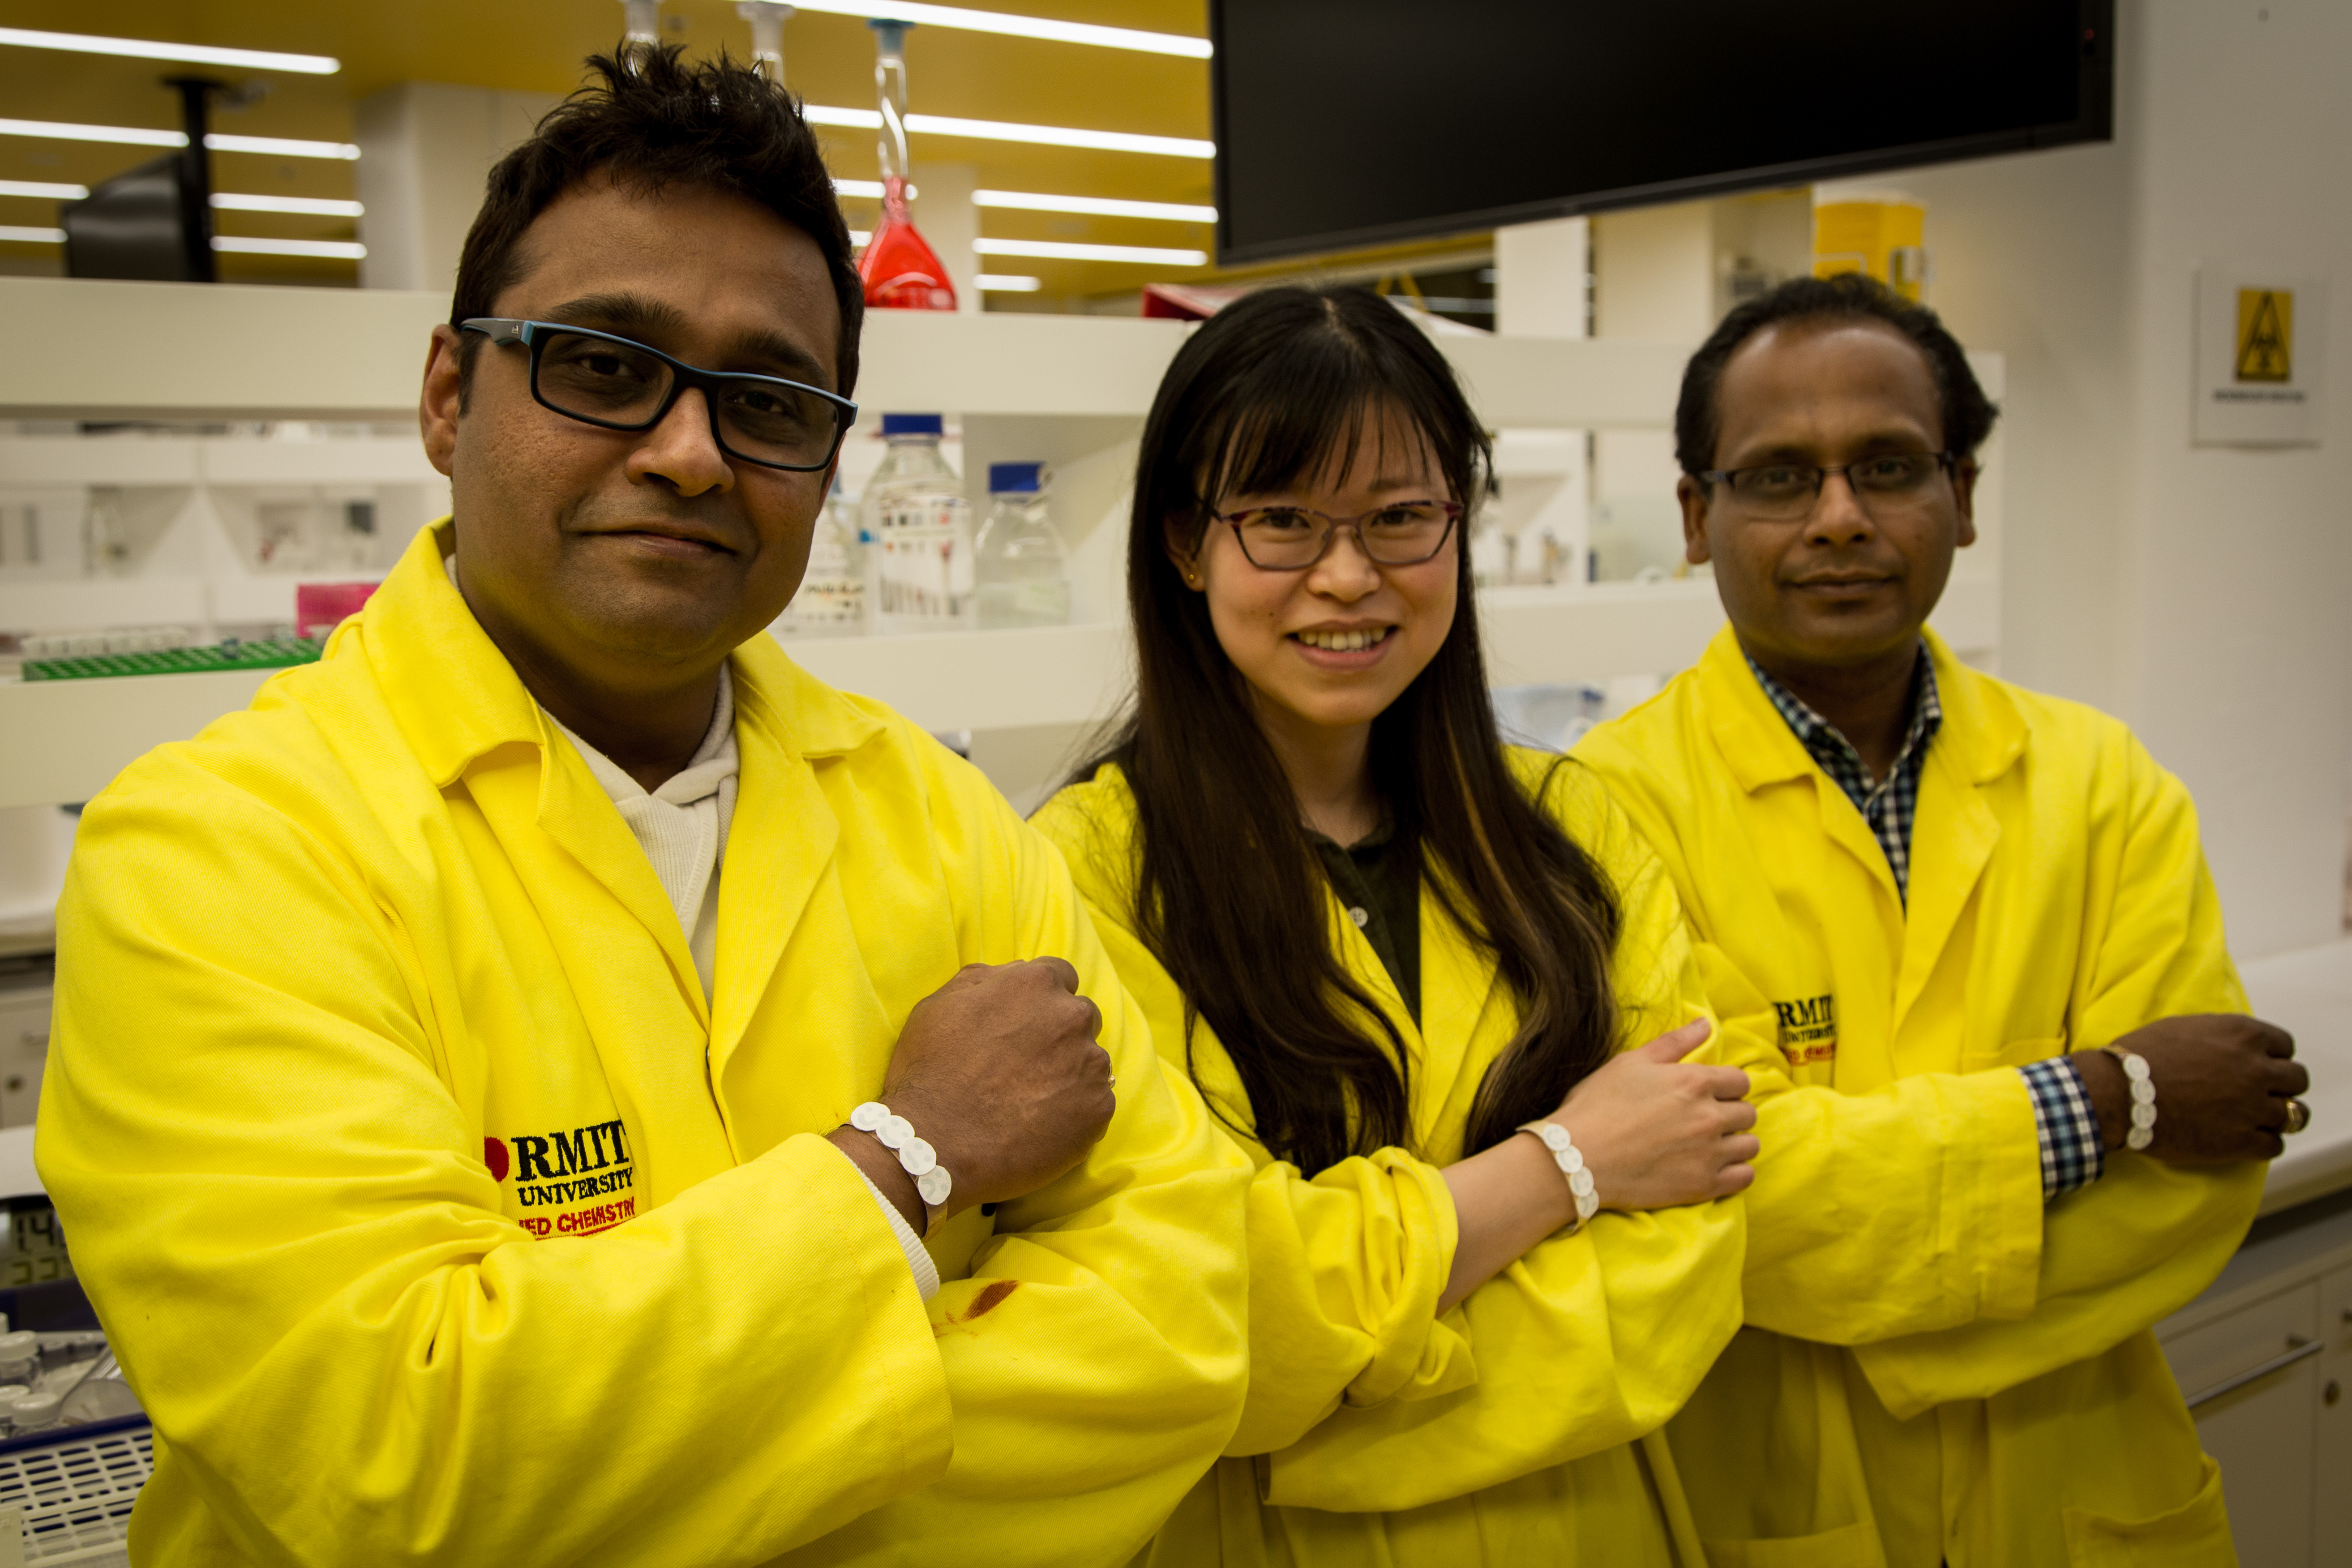 RMIT researchers from the Ian Potter NanoBioSensing Facility wearing prototypes of their UV sensor, from left to right, Dr Rajesh Ramanthan, PhD candidate Wenyue Zou and Professor Vipul Bansal.